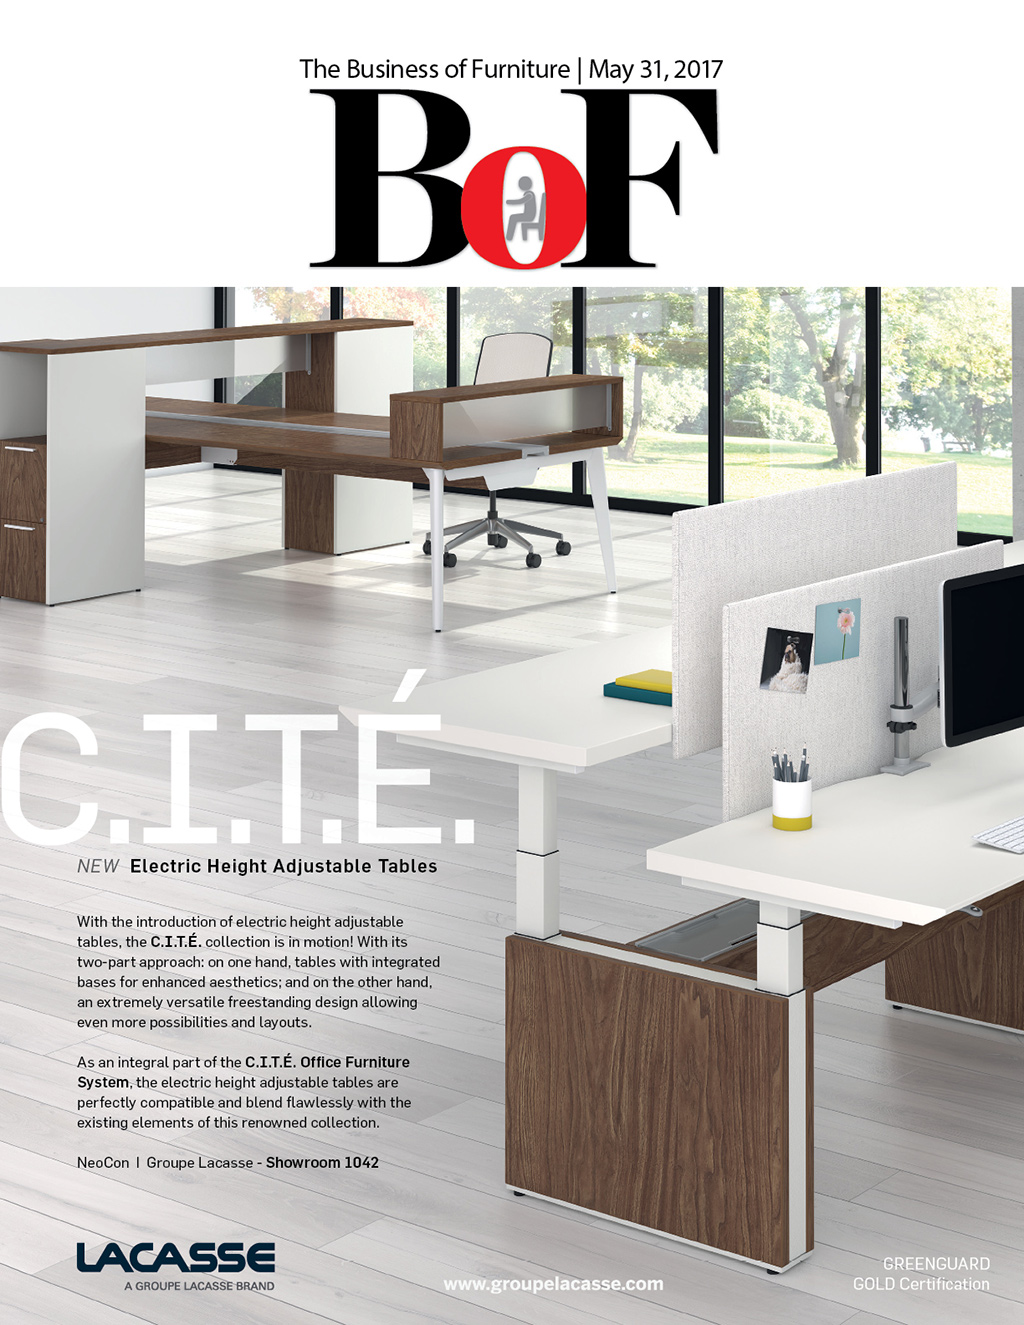 Furniture Design Magazine bellow press - latest editions of business of furniture and